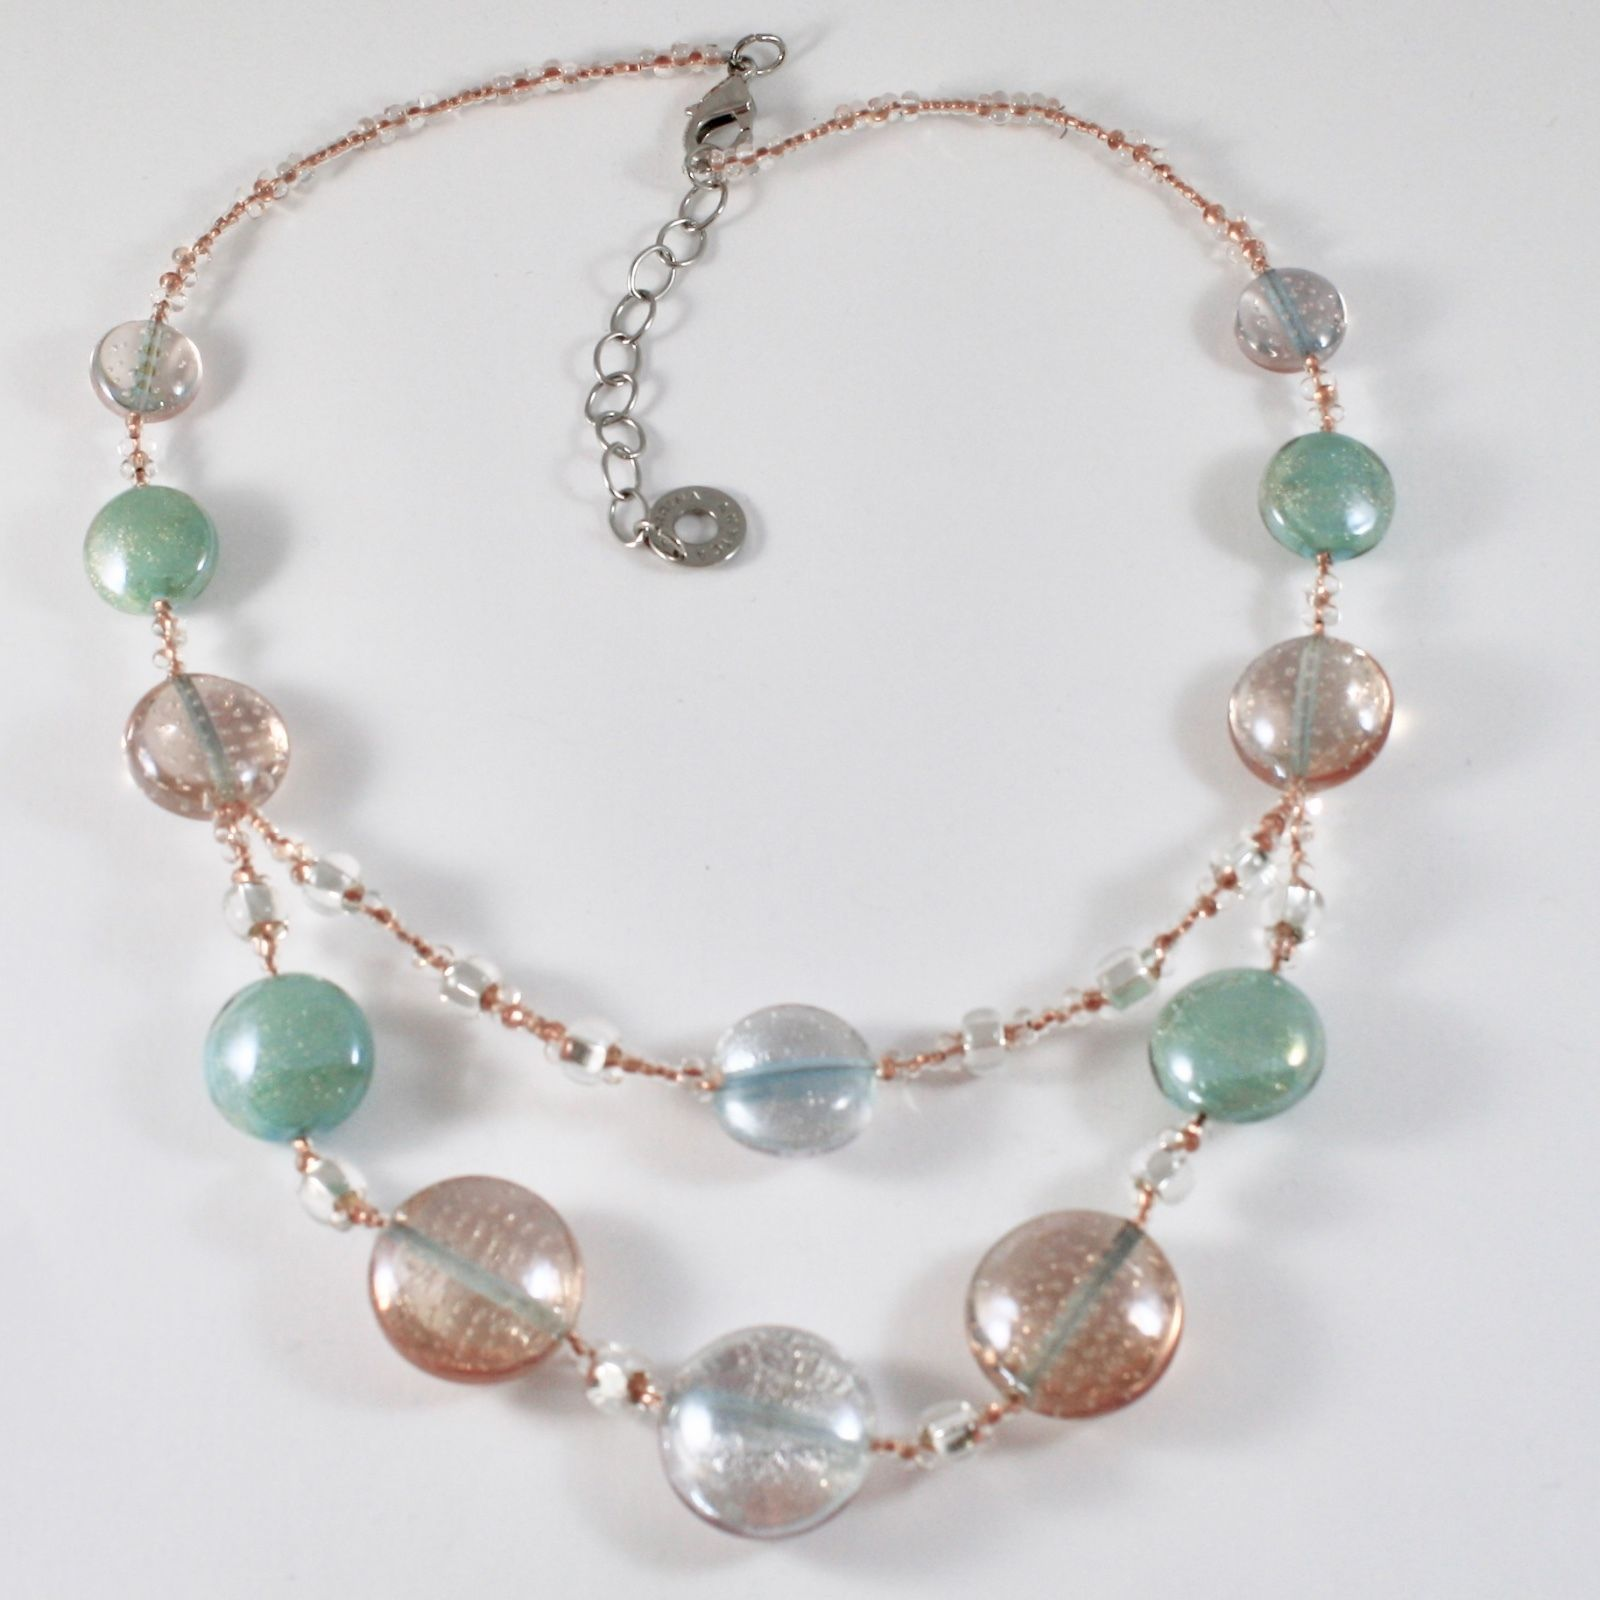 NECKLACE ANTICA MURRINA VENEZIA WITH MURANO GLASS, DISCS PINK GREEN WHITE